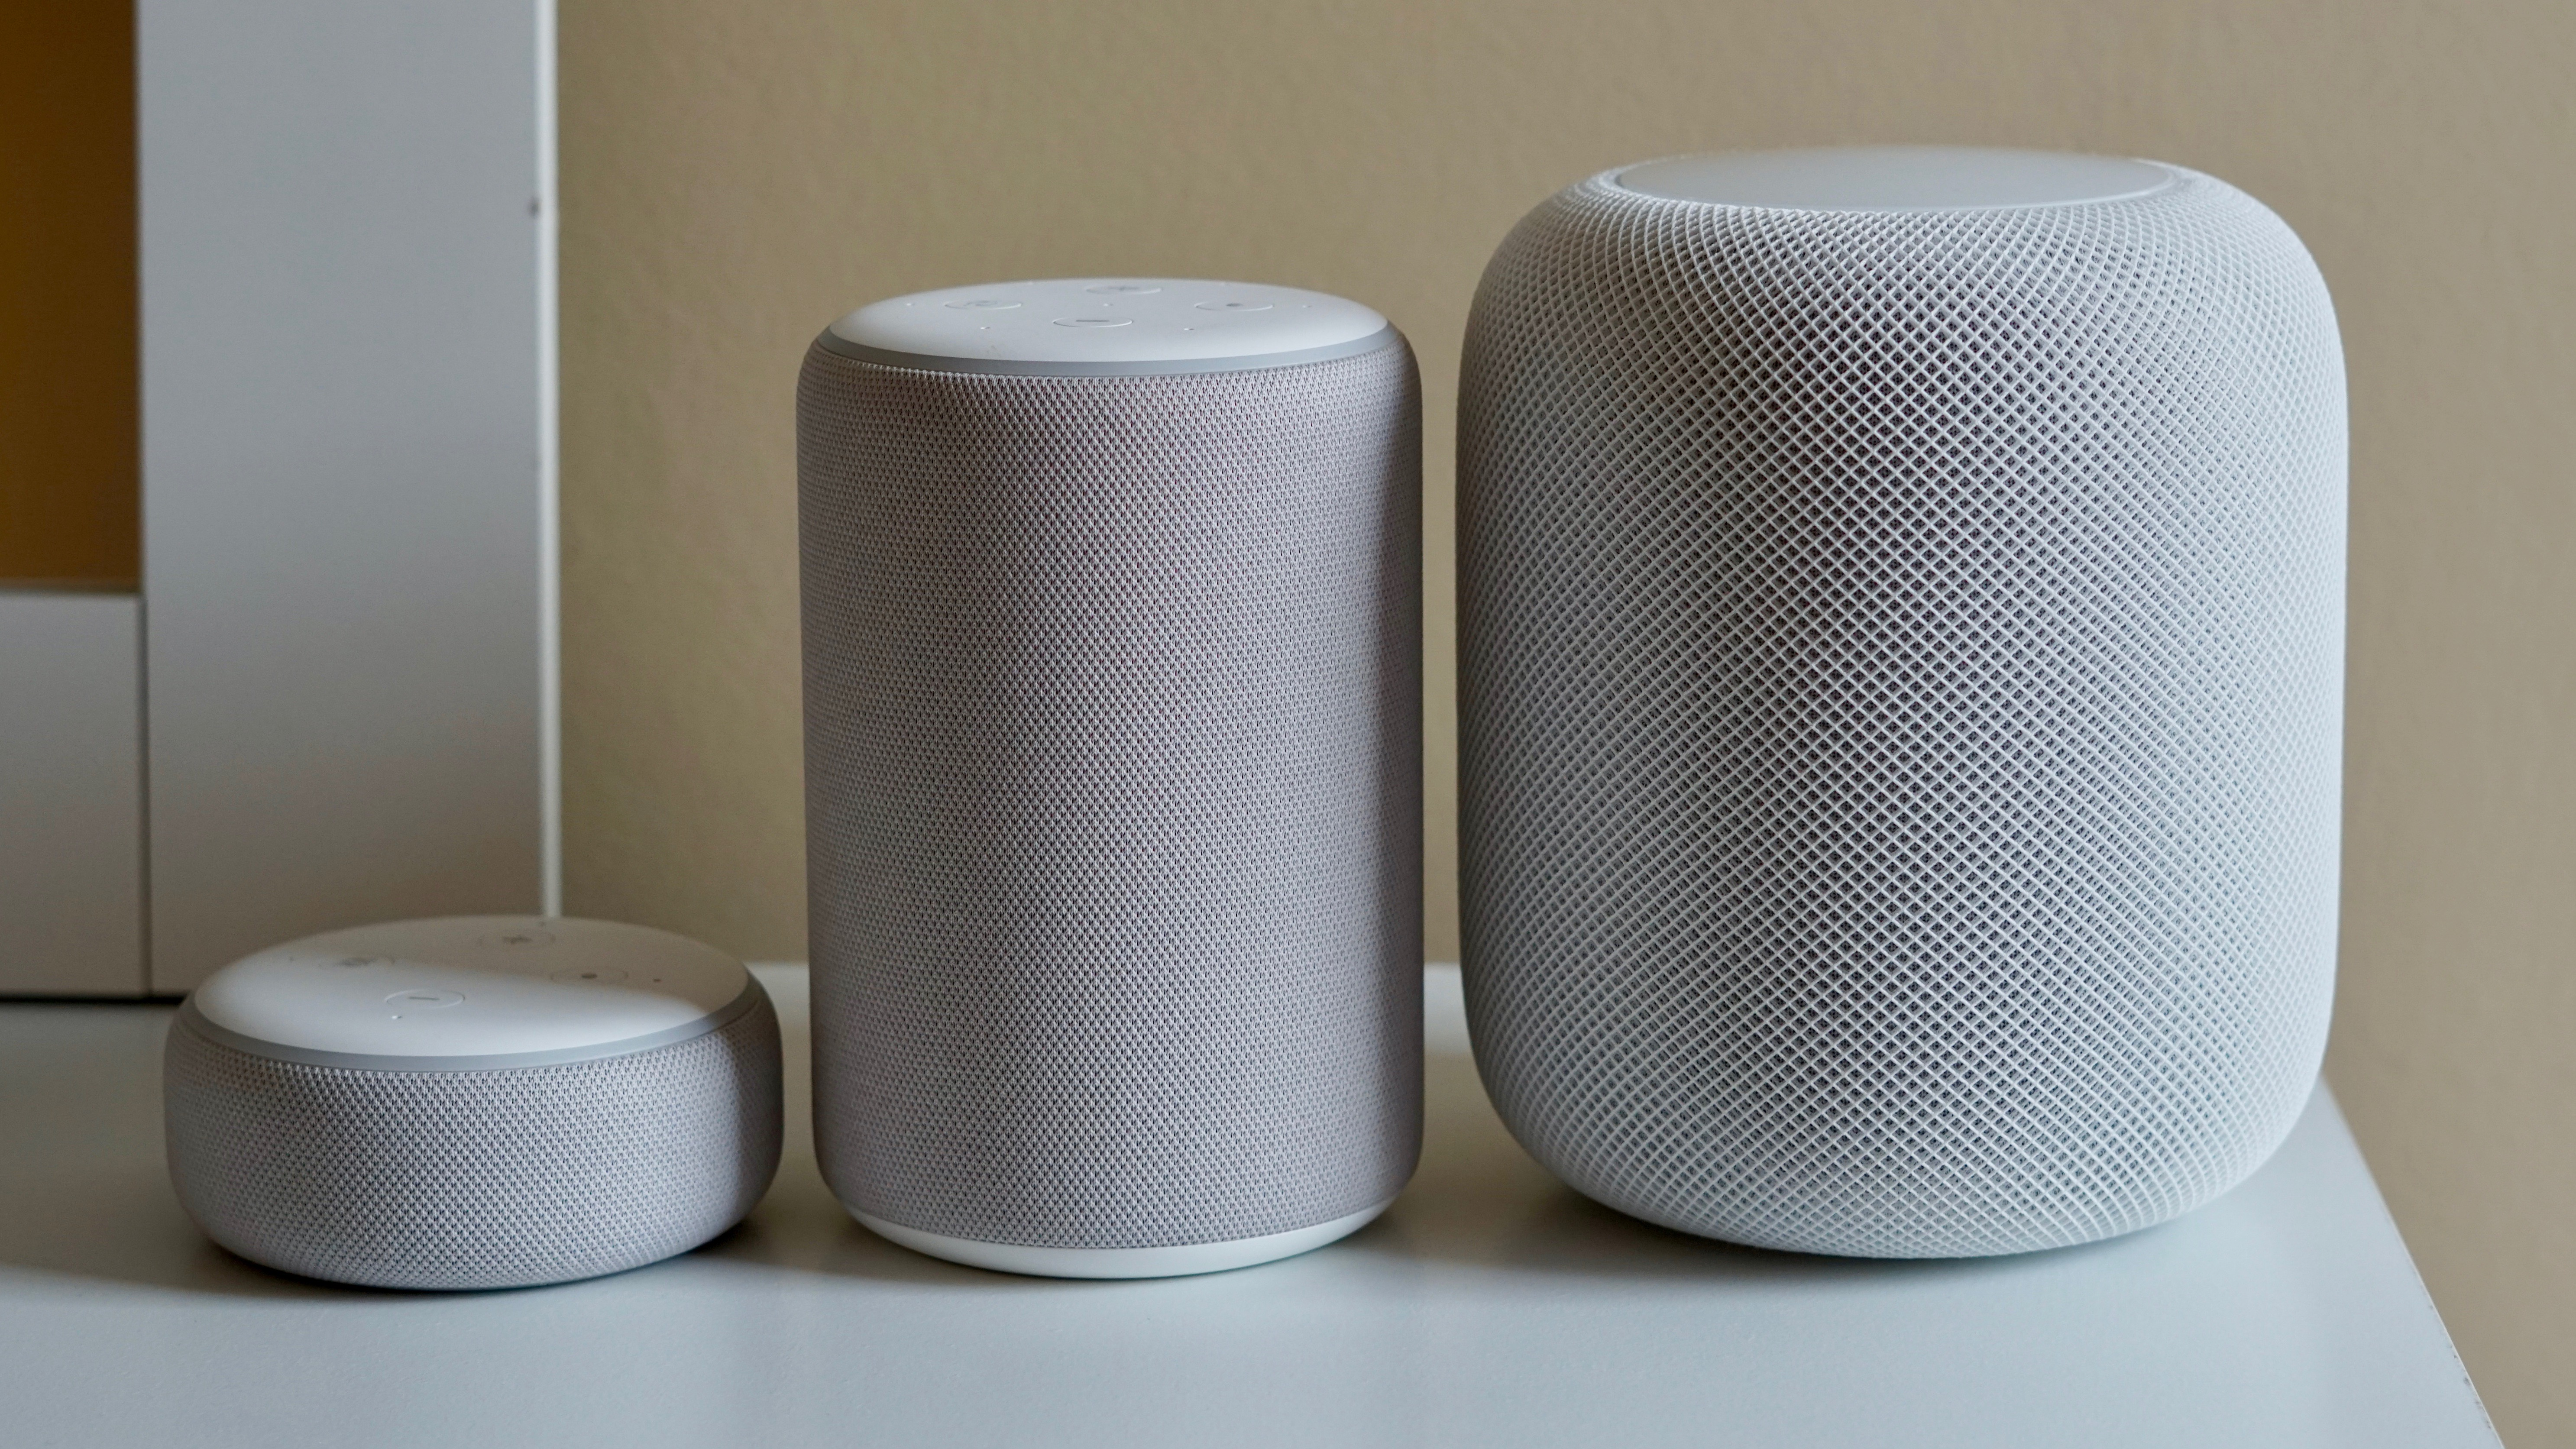 Active smart speakers estimated to hit over 200 million this year, HomePod reach could be a factor